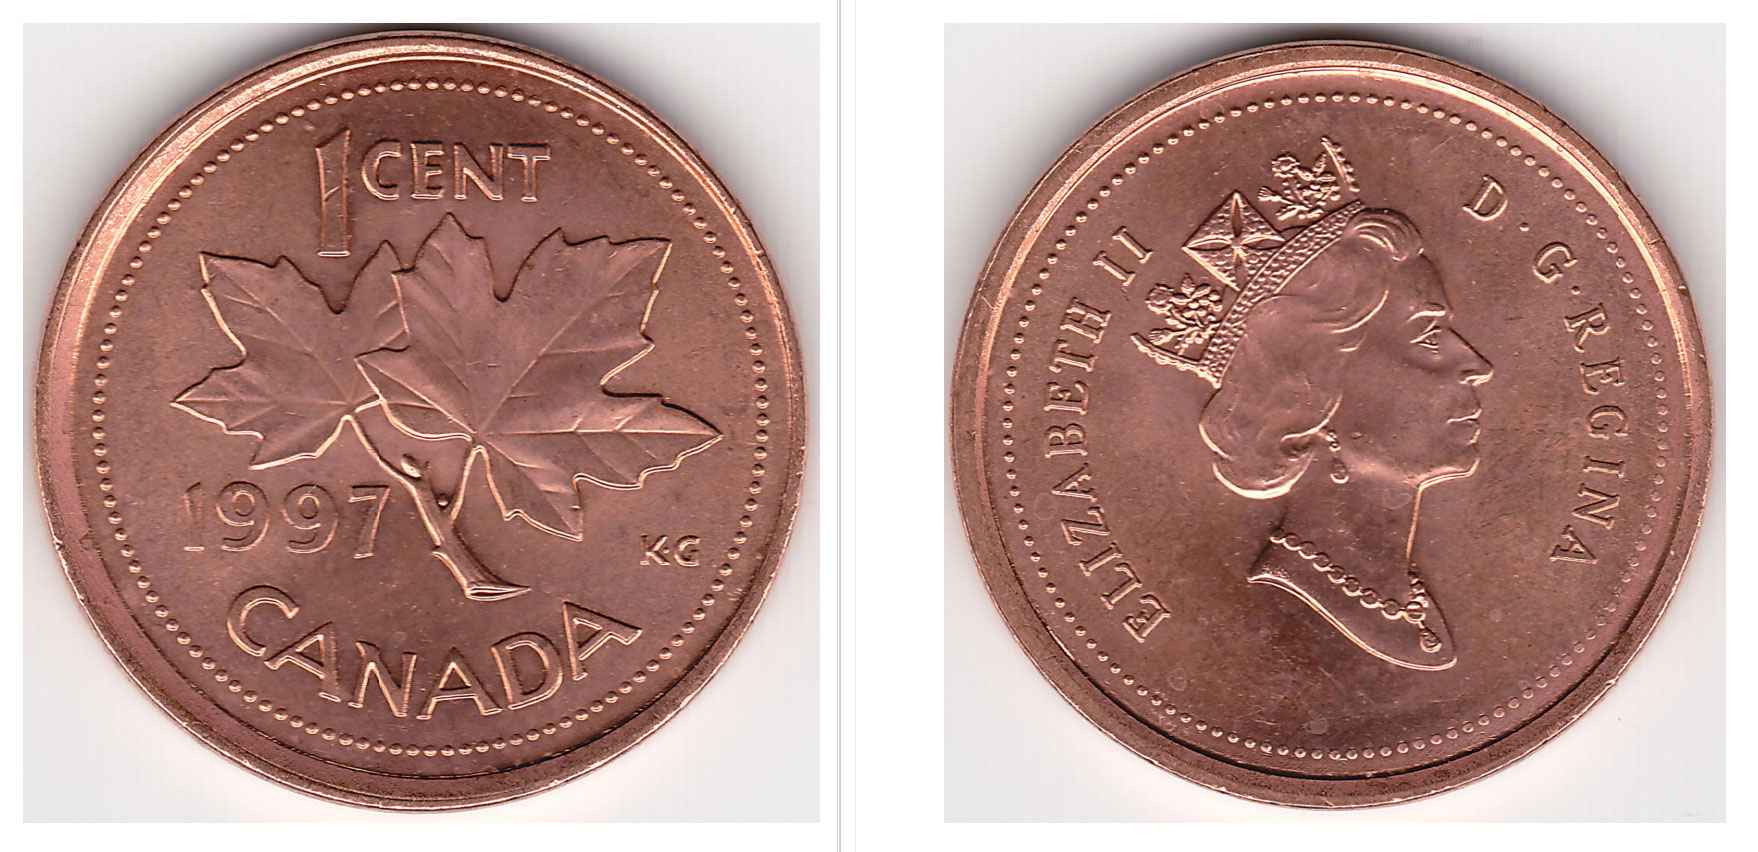 Coins And Canada 1 Cent 1977 Canadian Coins Price Guide Value Errors And Varieties